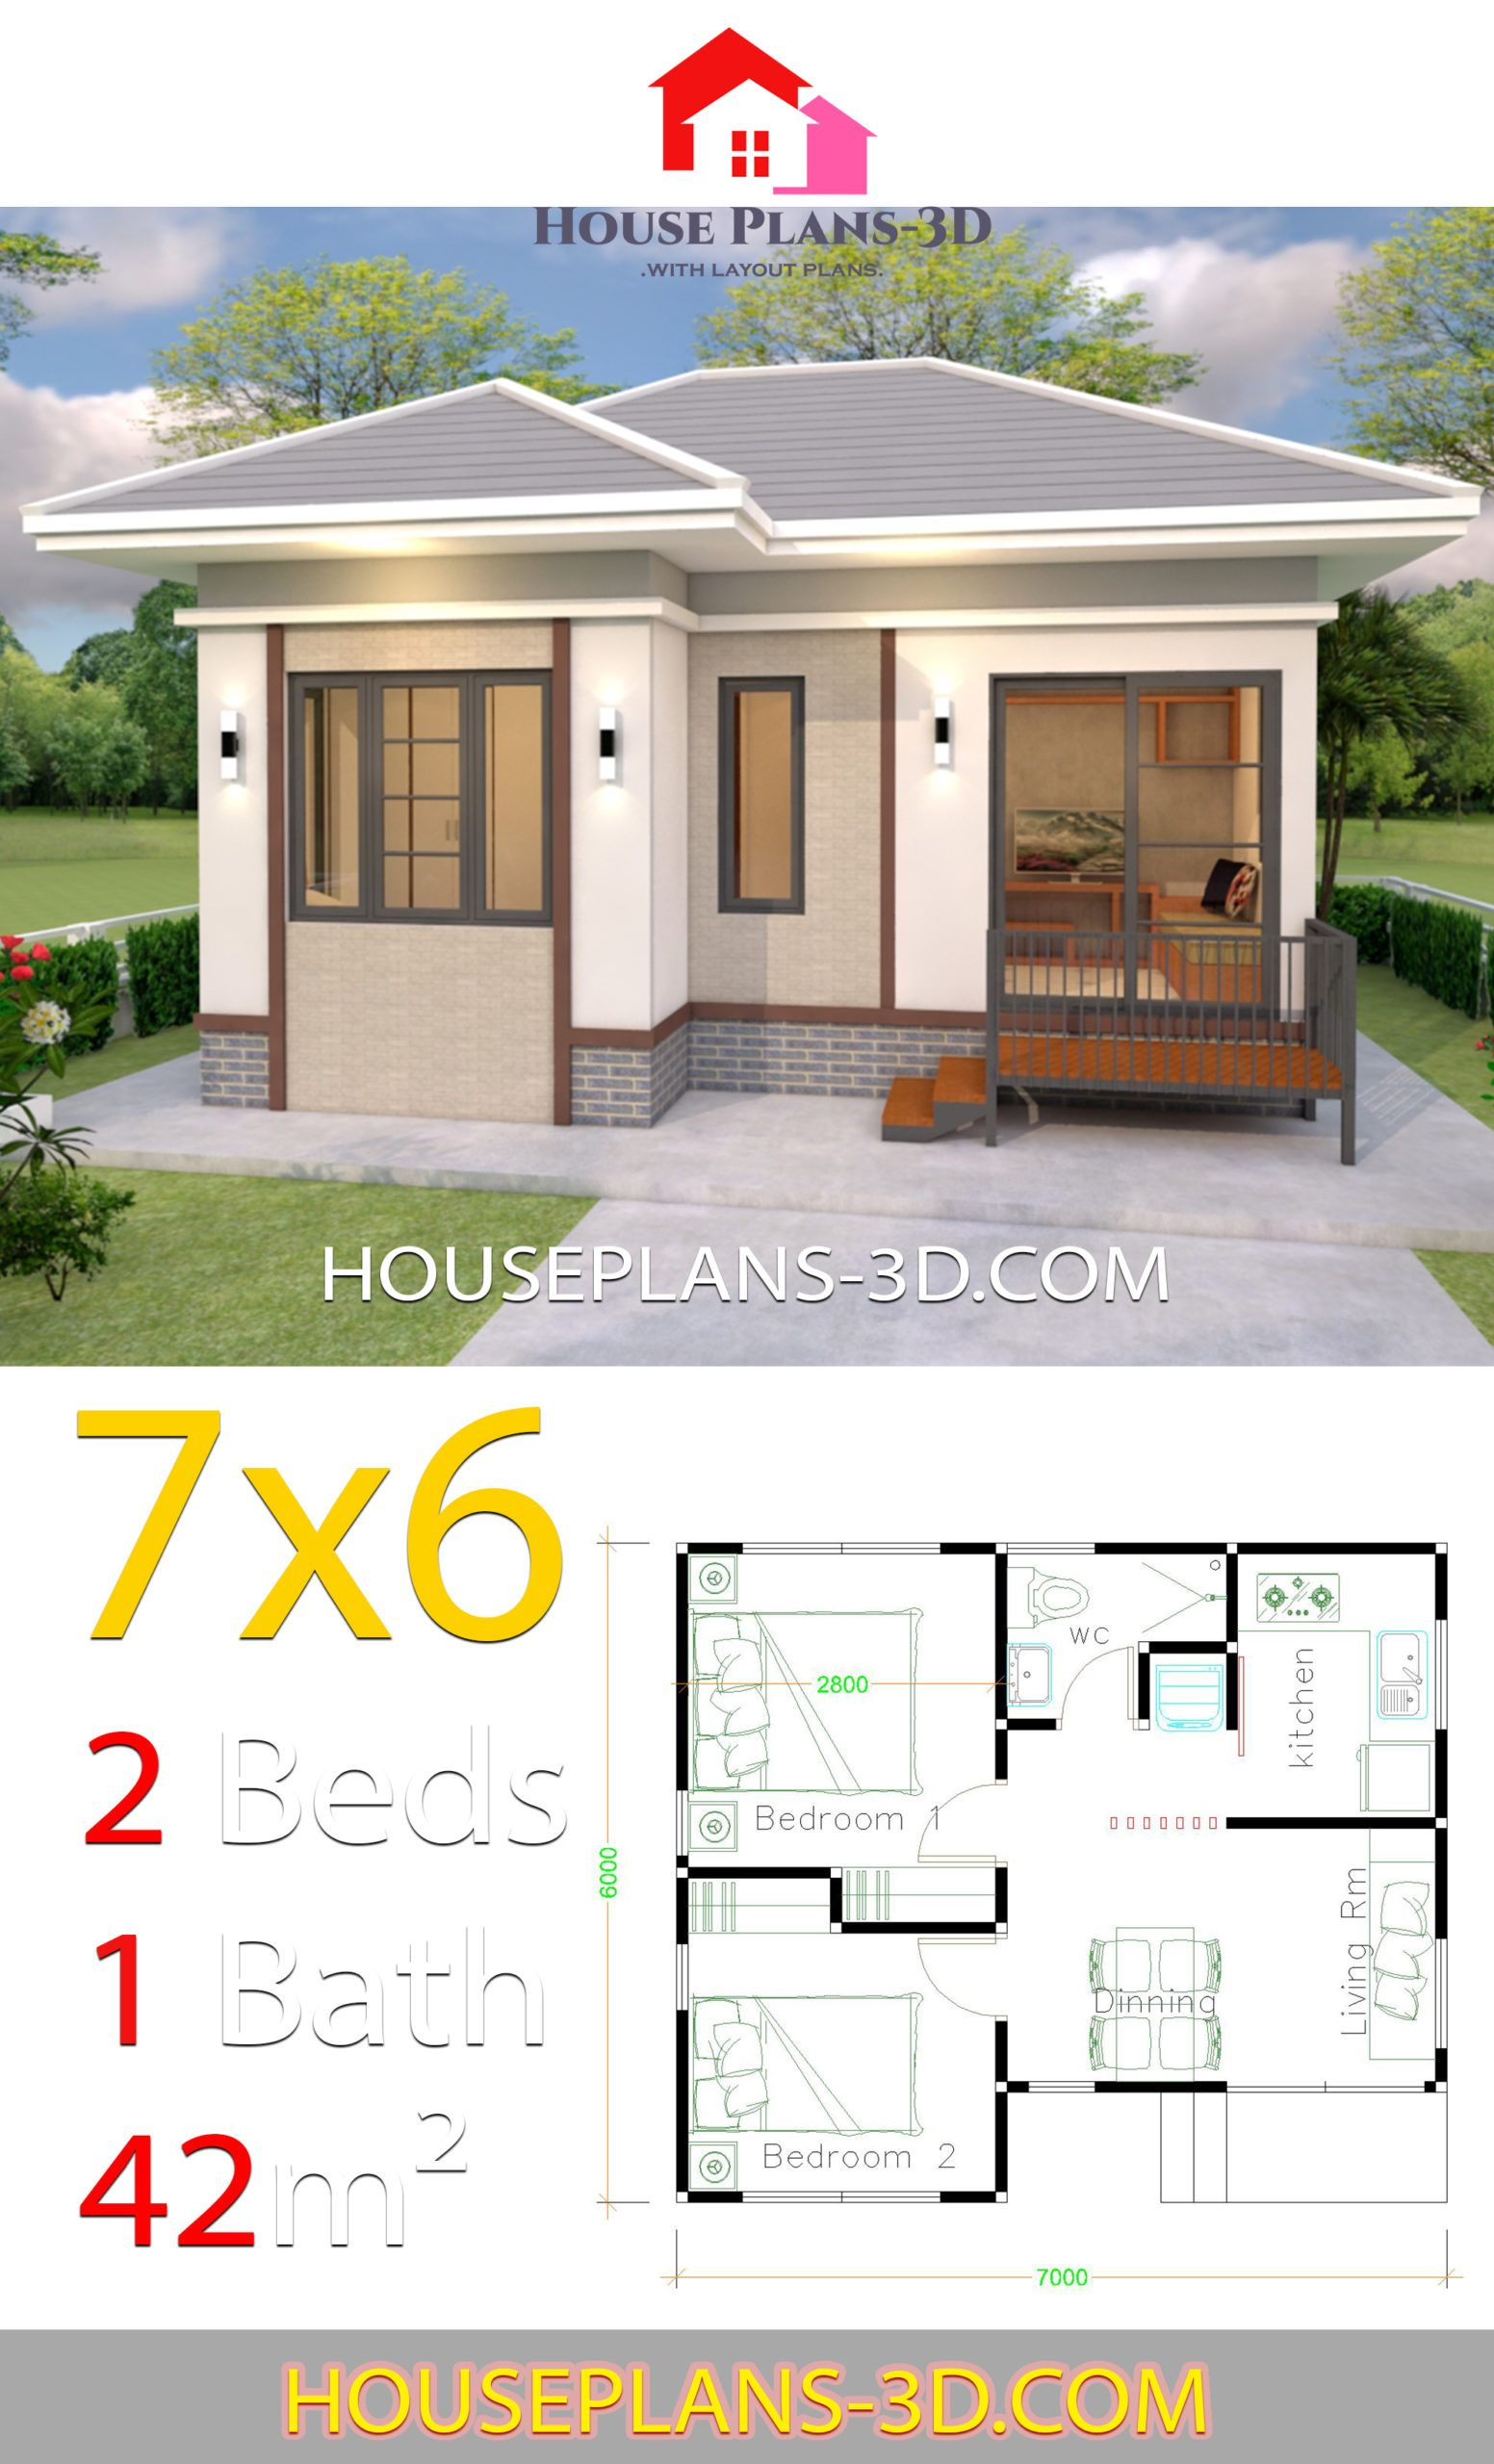 House Plans Design 7x6 With 2 Bedroos Hip Roof House Plans 3d House Plans House Plan Gallery House Construction Plan